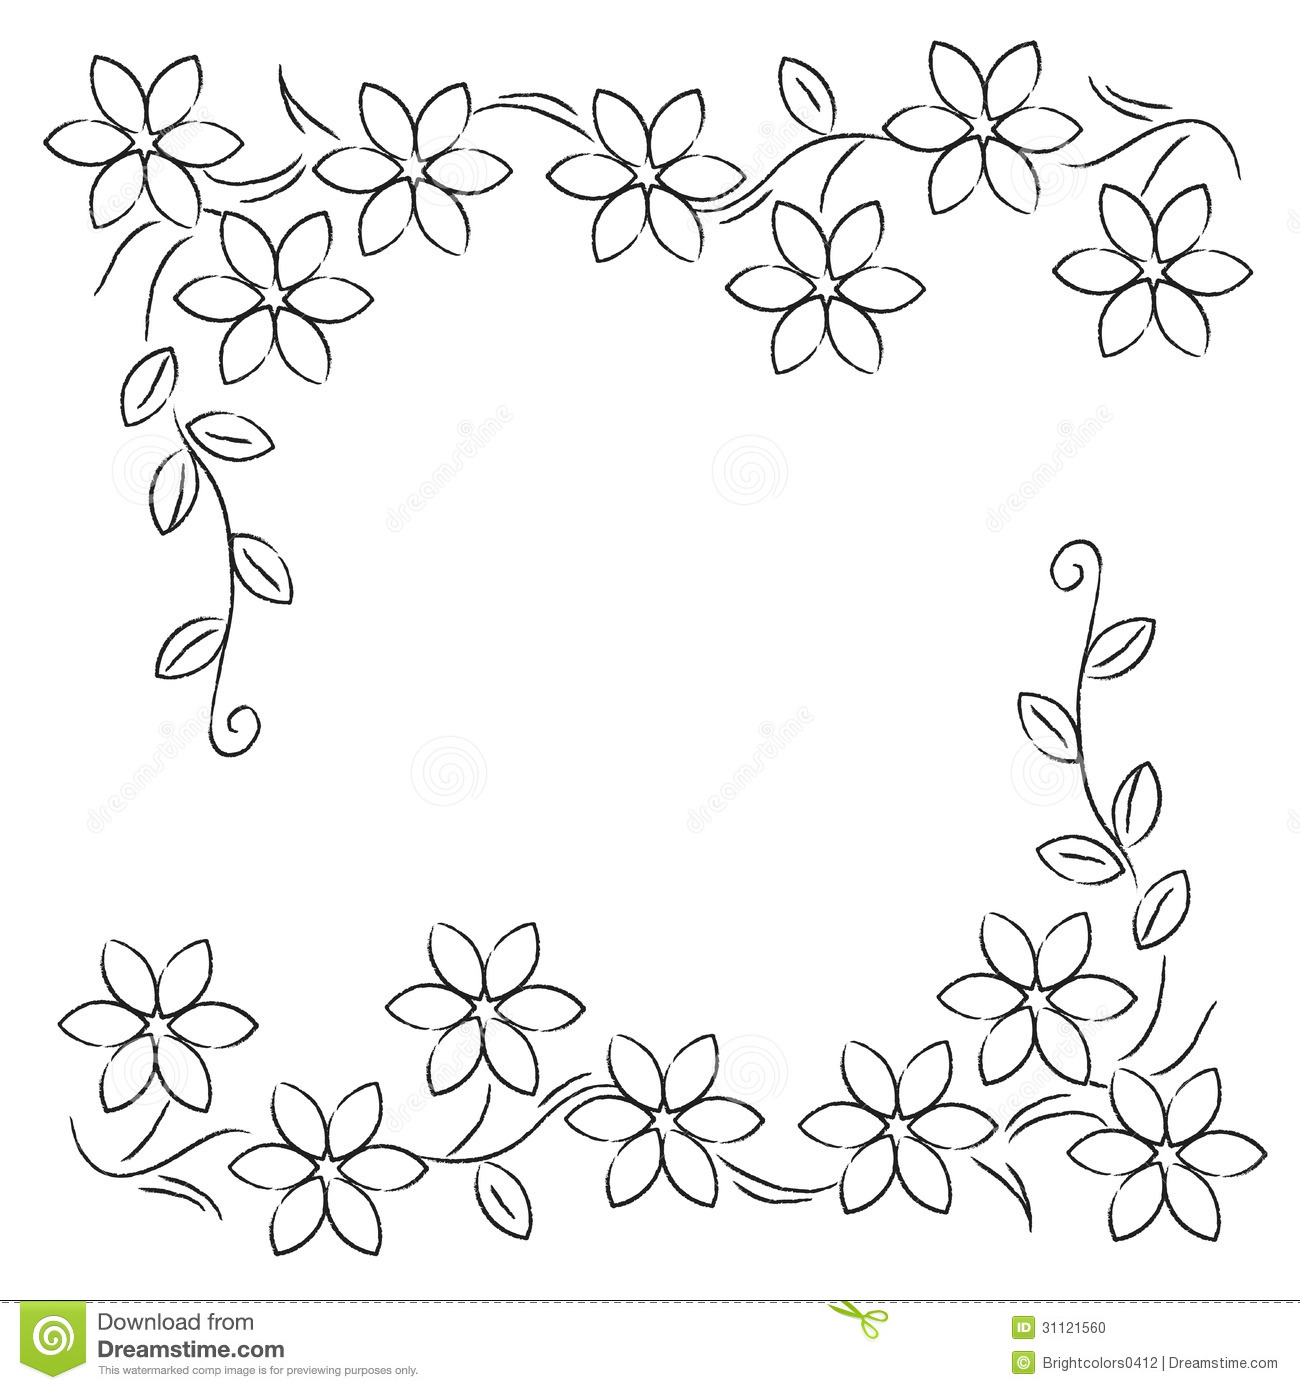 Flower line border black white stock illustration illustration of flower line border black white mightylinksfo